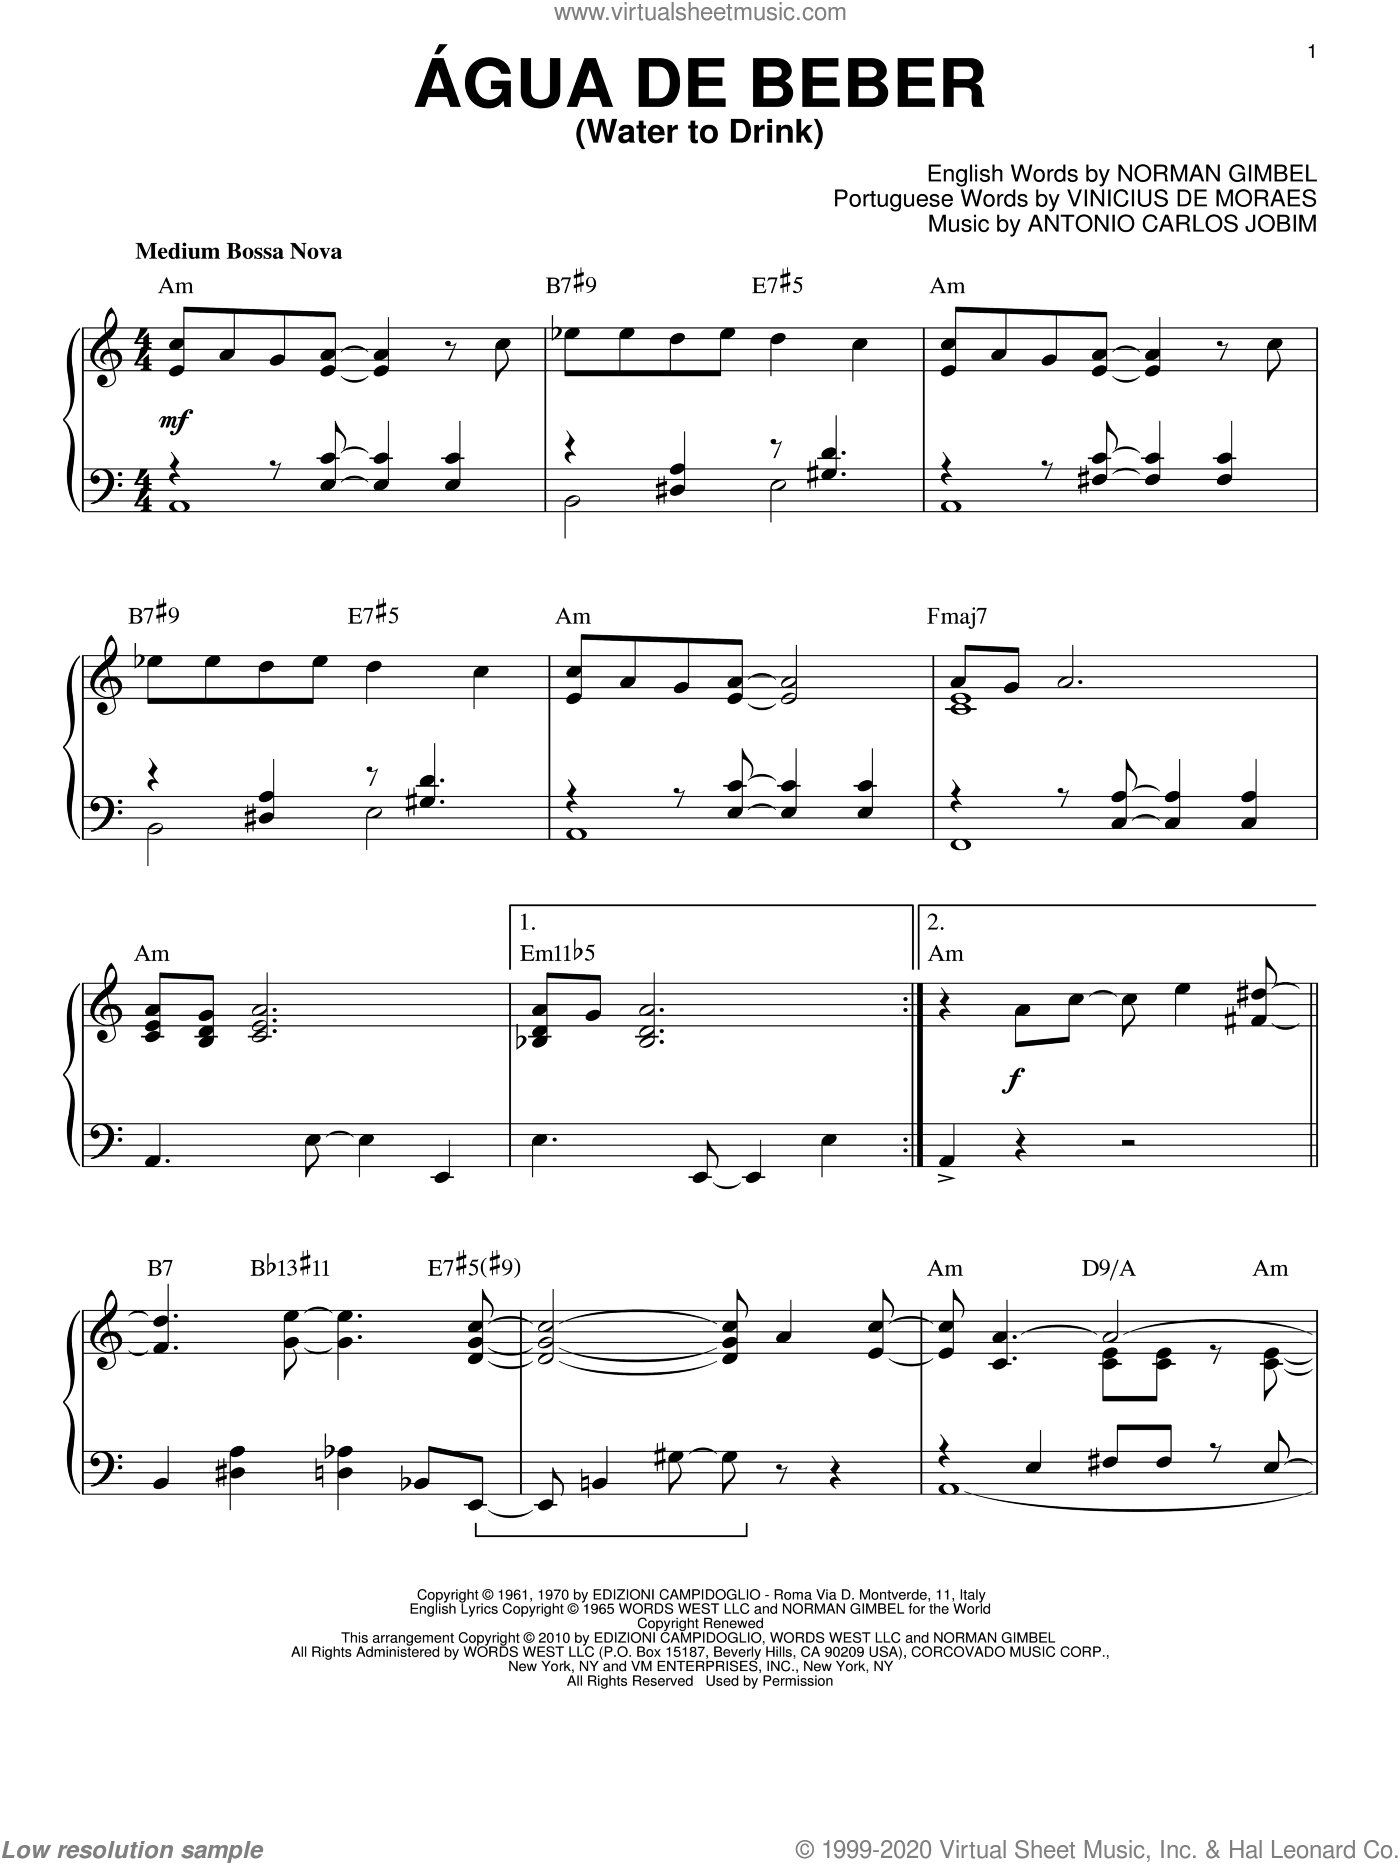 Agua De Beber (Water To Drink) sheet music for piano solo by Antonio Carlos Jobim, Norman Gimbel and Vinicius de Moraes, intermediate skill level